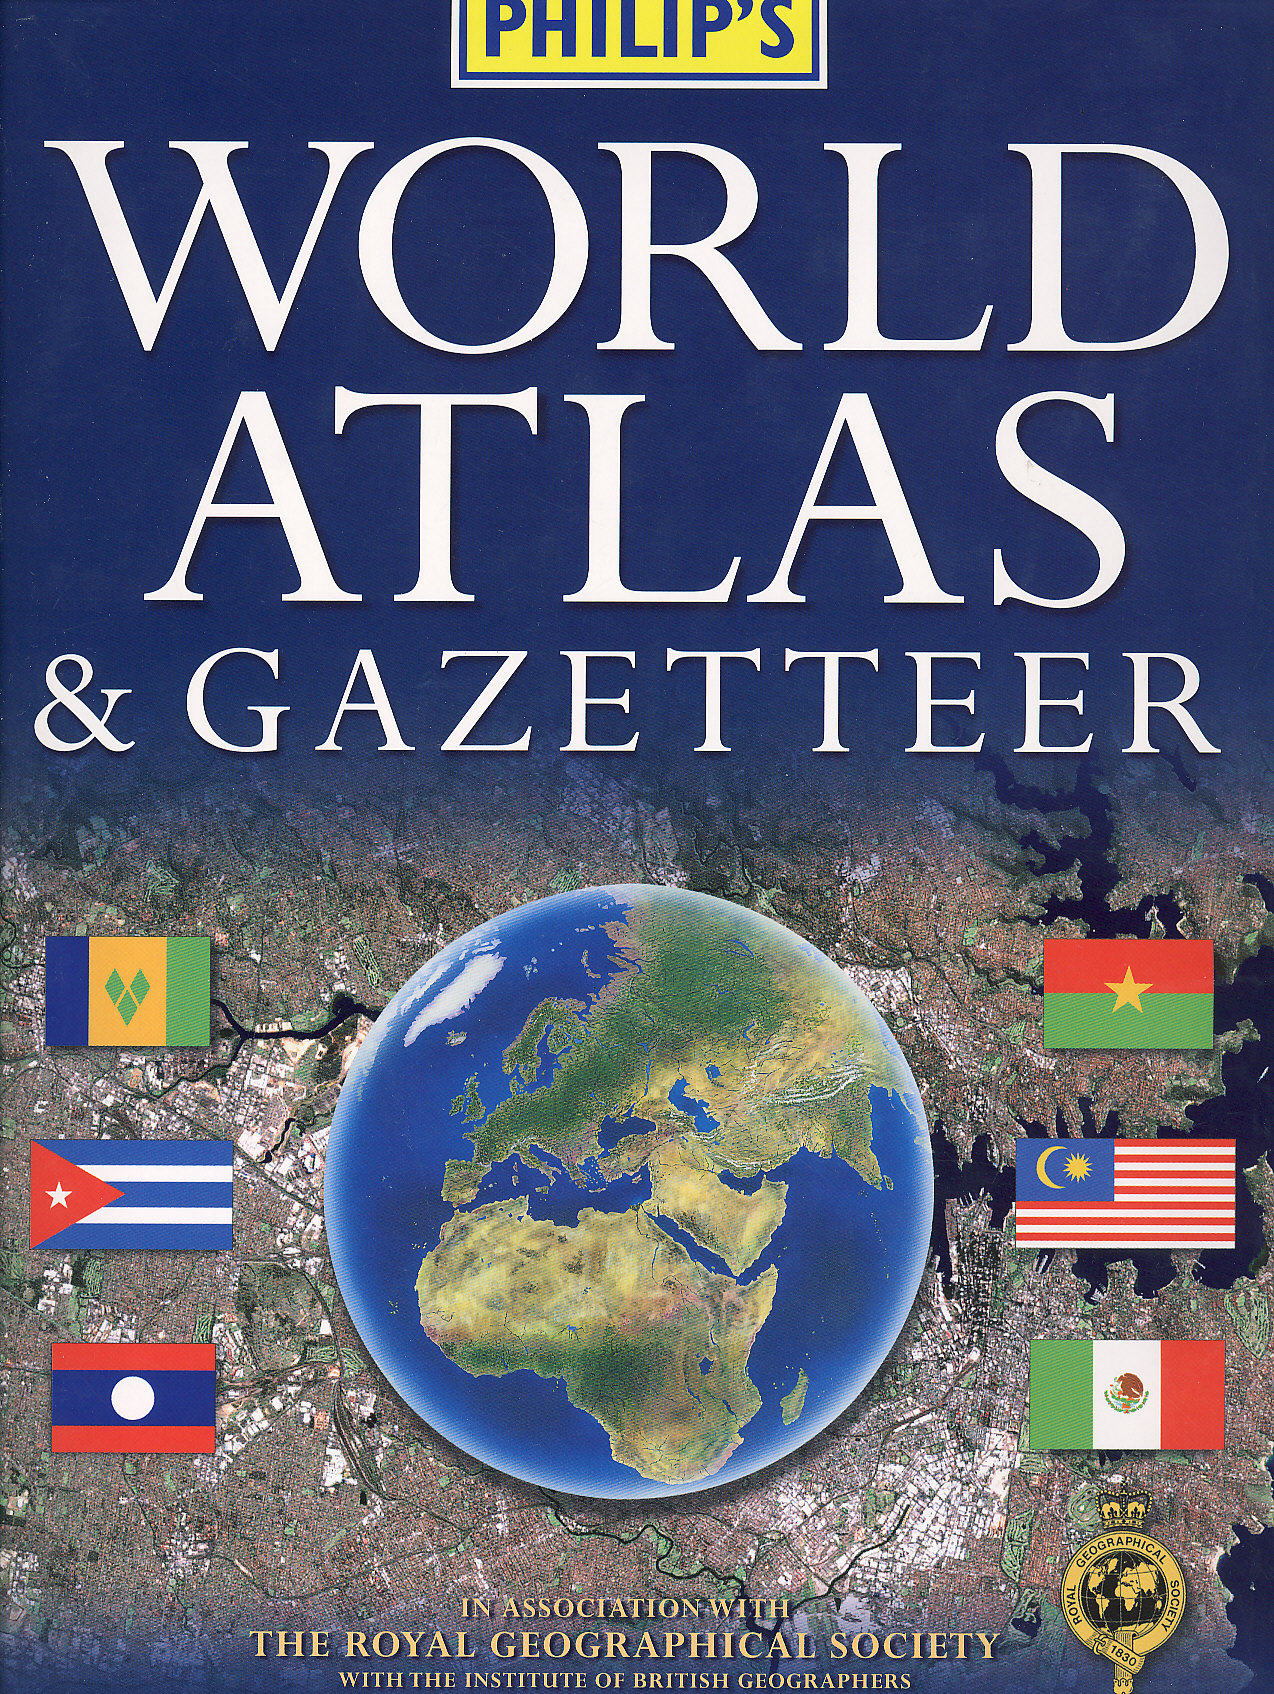 Philip's World Atlas and Gazetteer